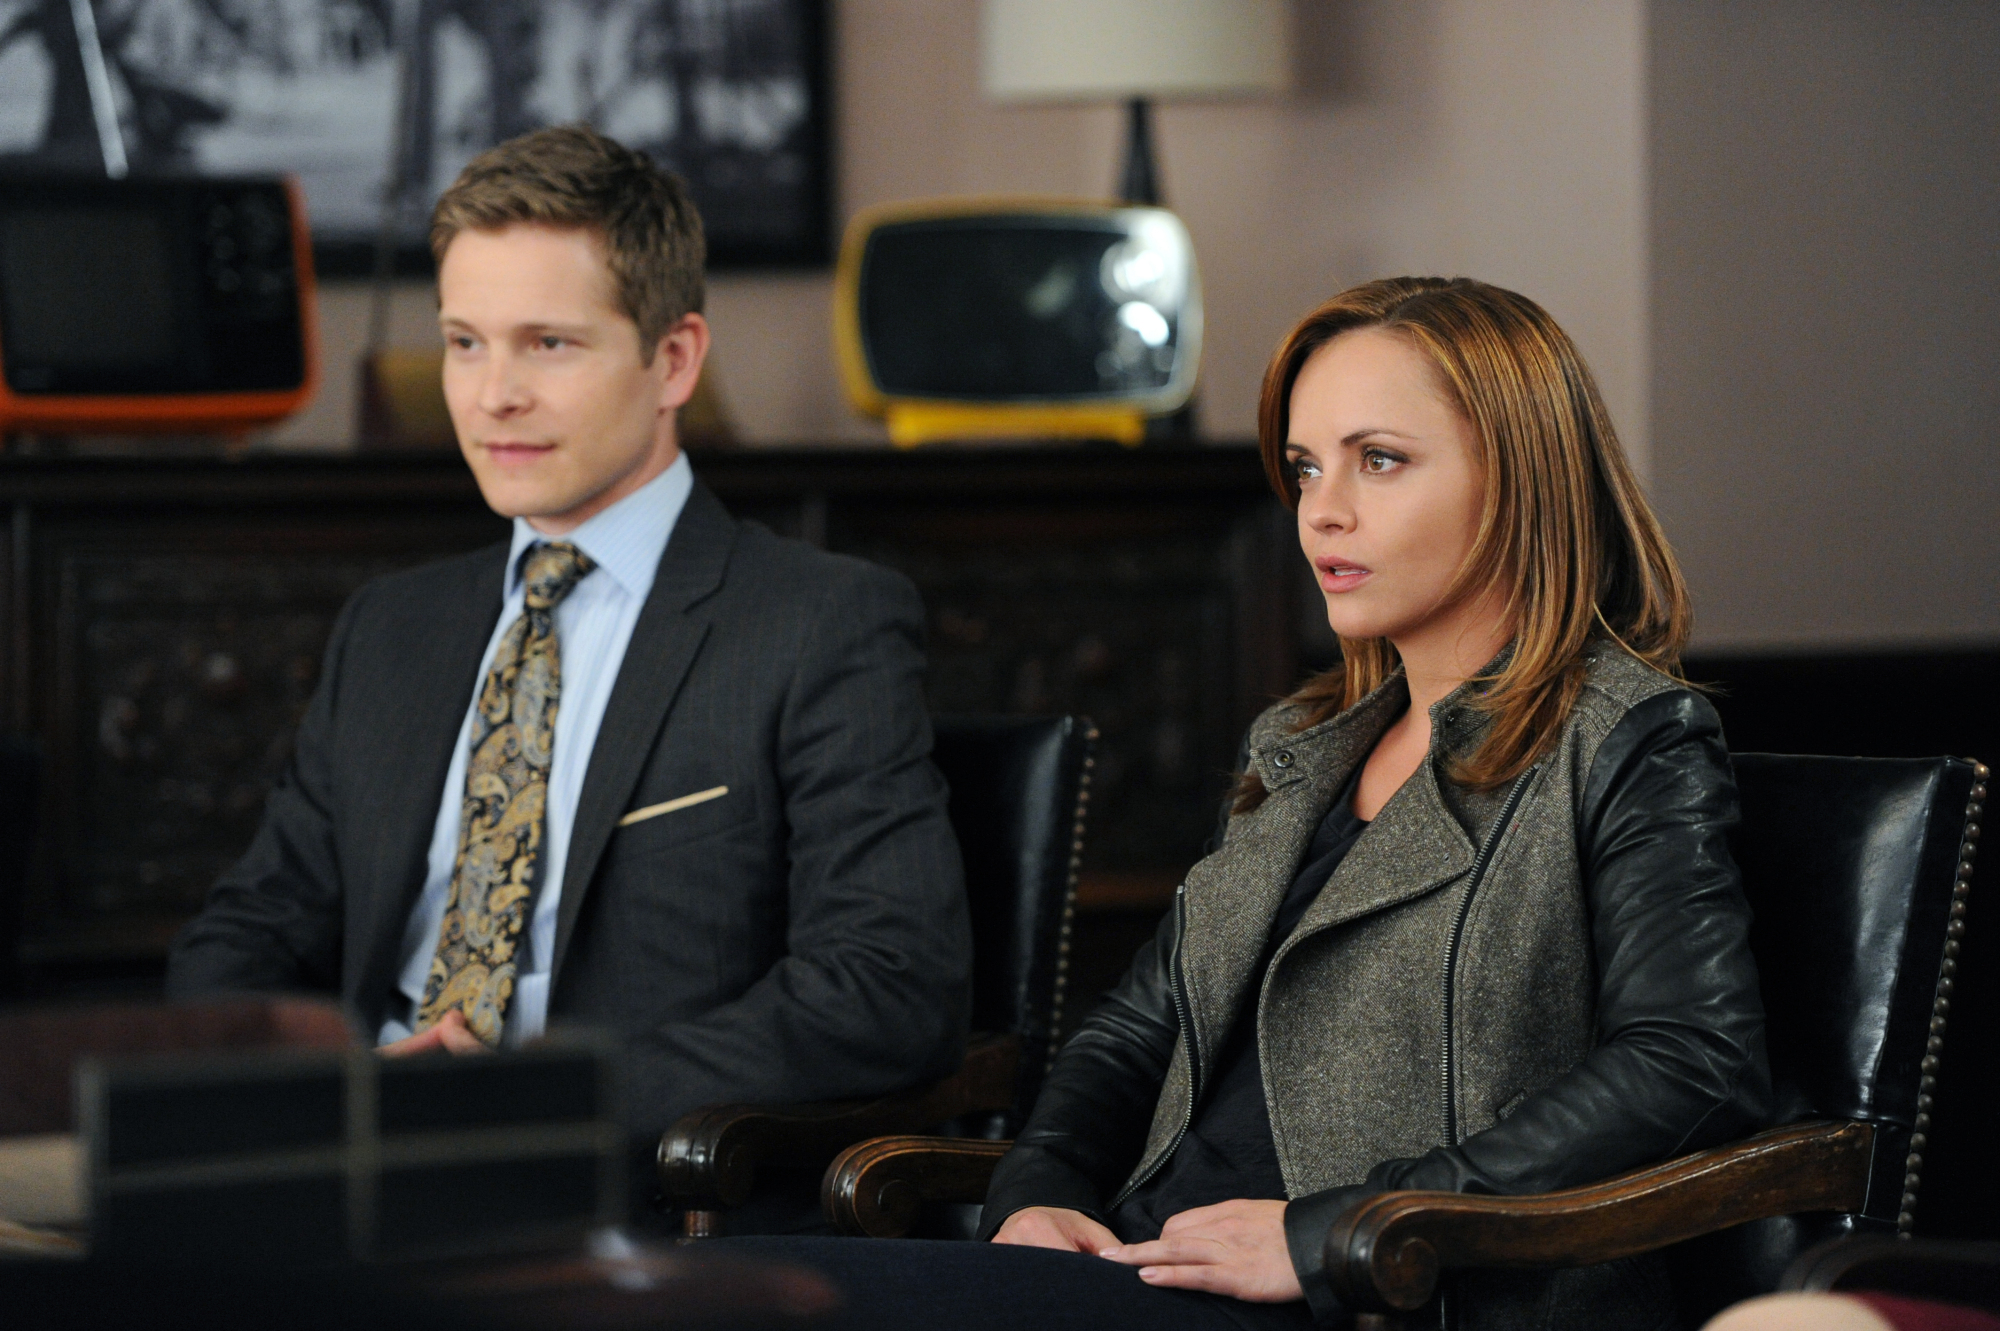 THE GOOD WIFE | RTÉ Presspack